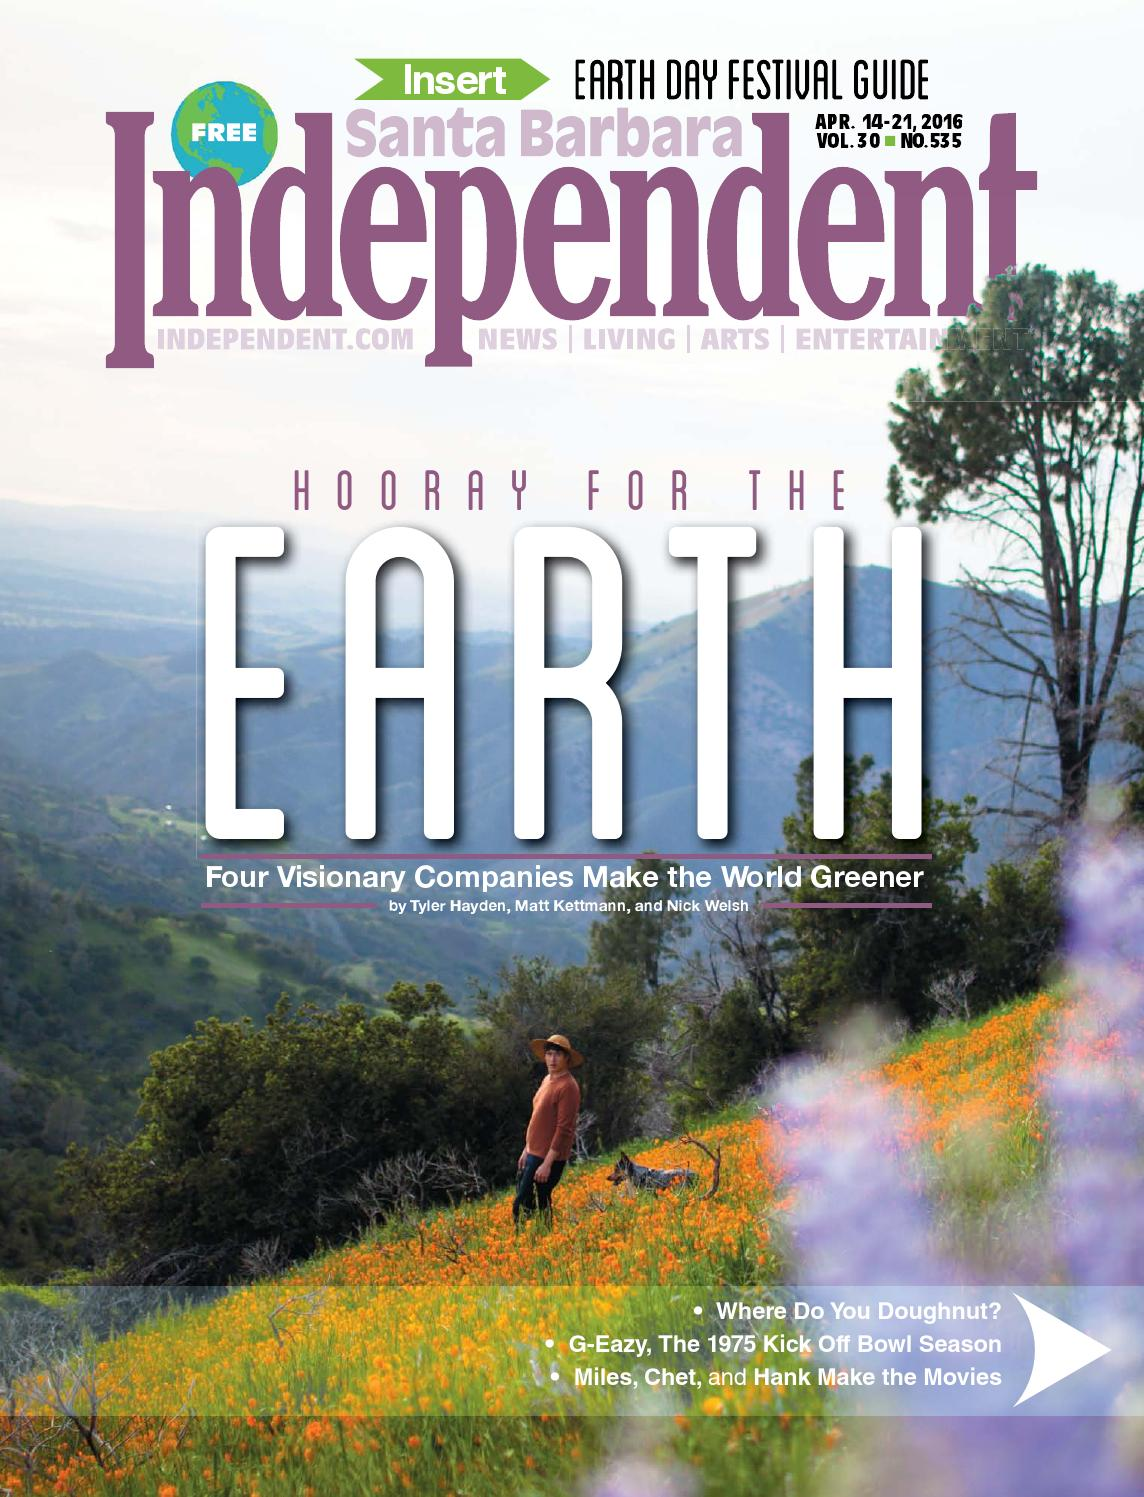 santa barbara independent 041416 by sb independent issuu